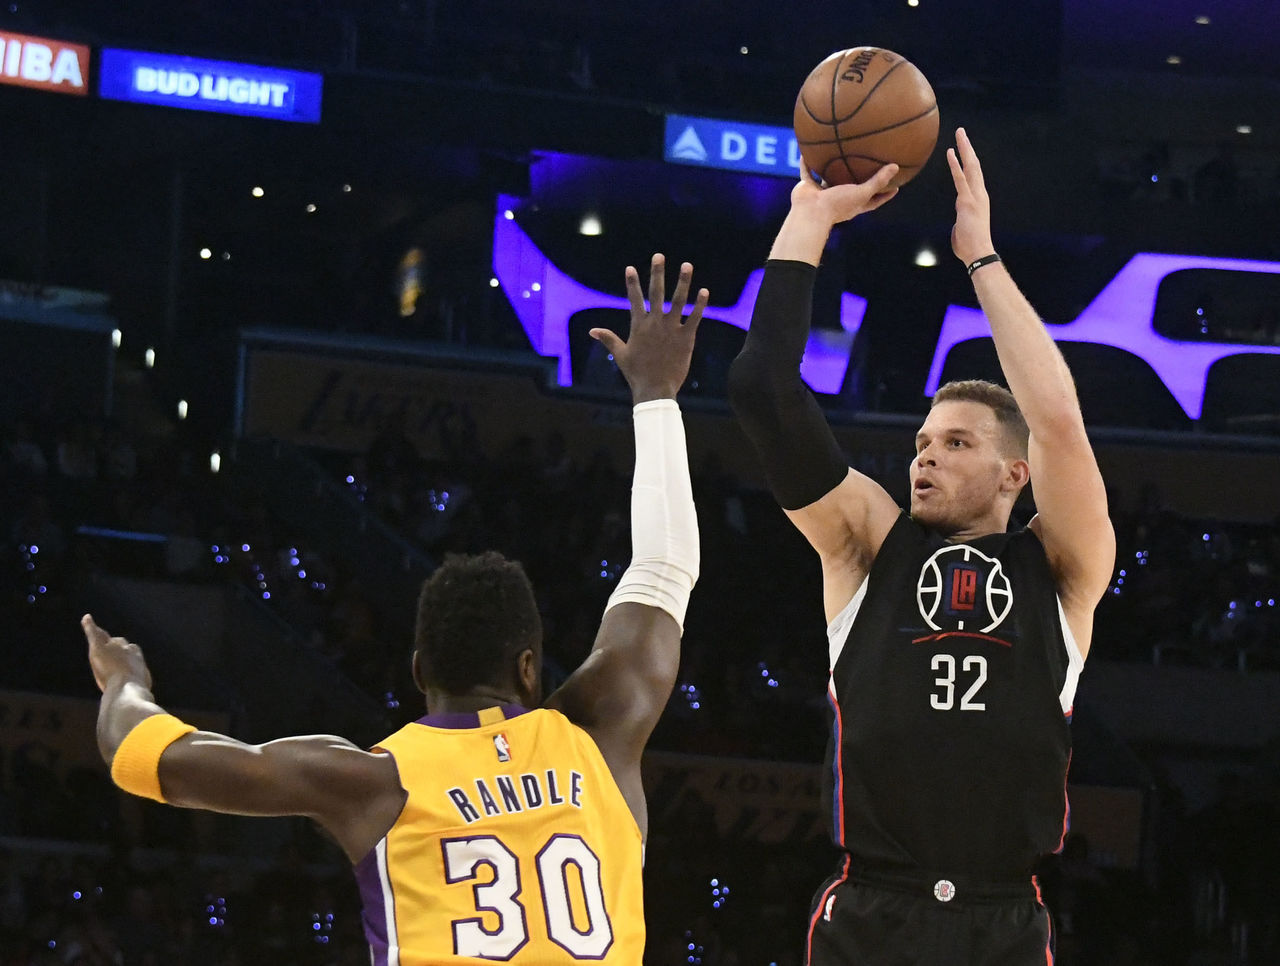 Cropped 2017 03 22t025102z 1525608284 nocid rtrmadp 3 nba los angeles clippers at los angeles lakers